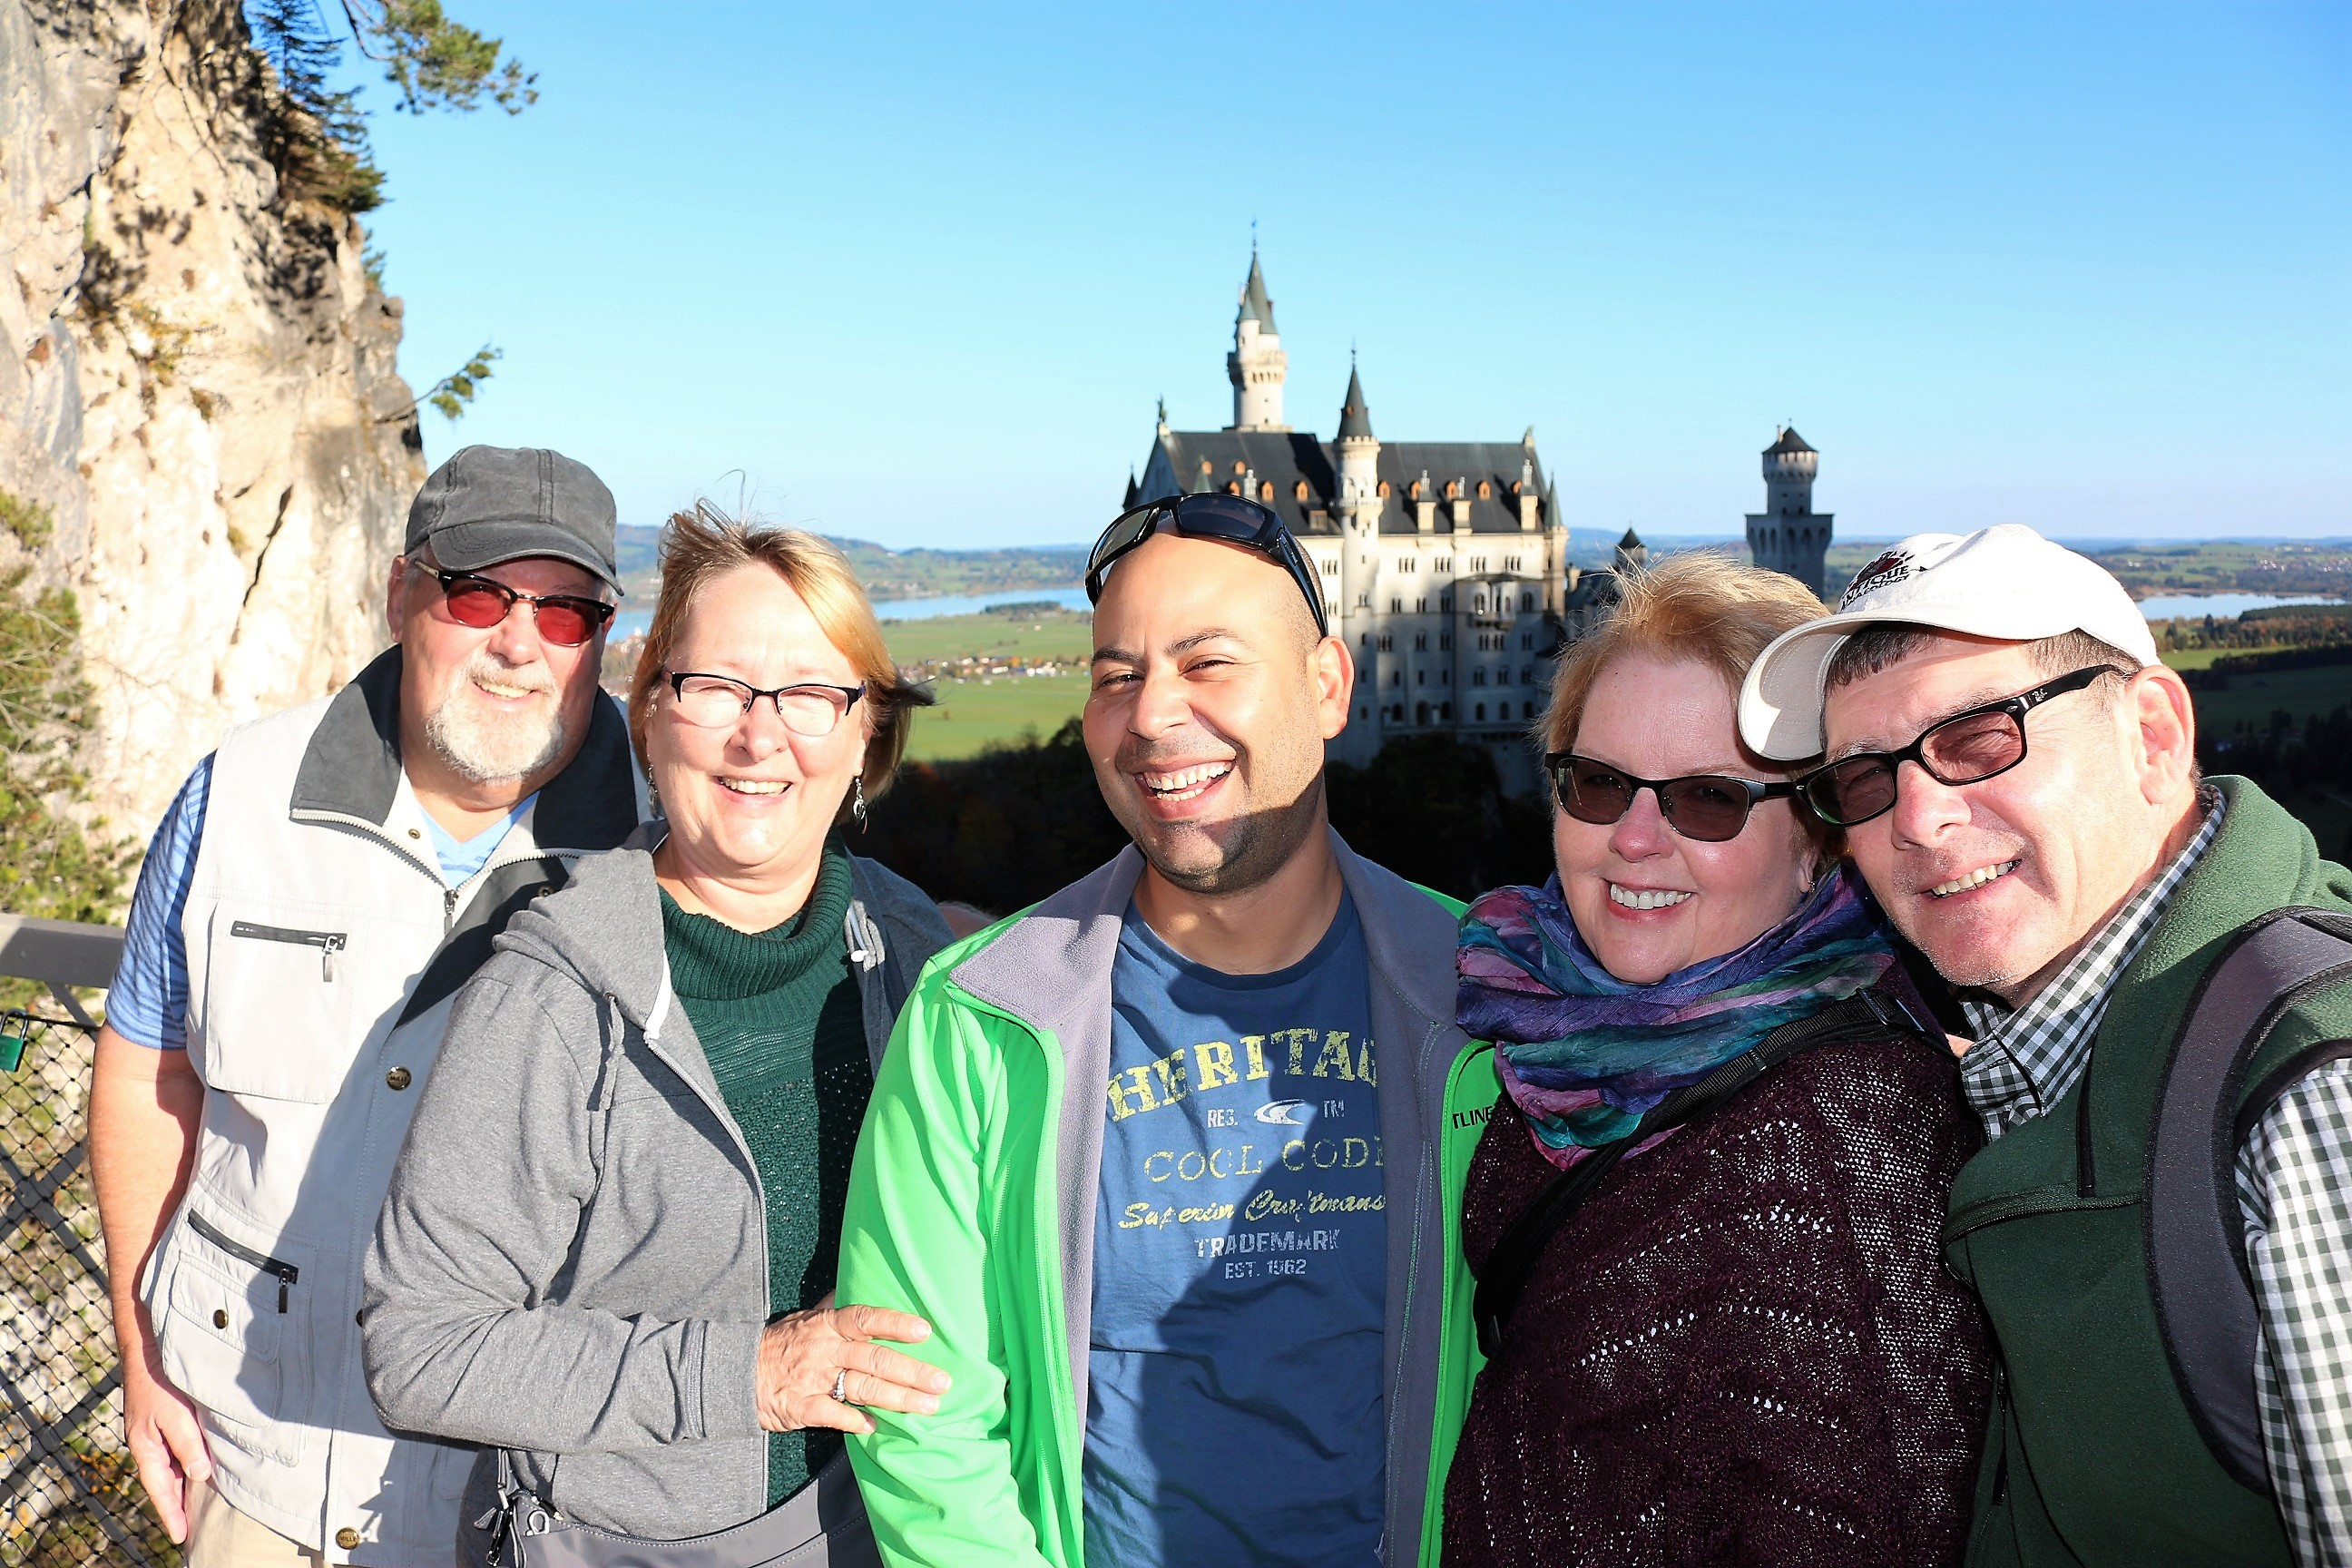 Neuschwanstein Castle Small Group Tour with Horse Carriage Ride From Hohenschwangau